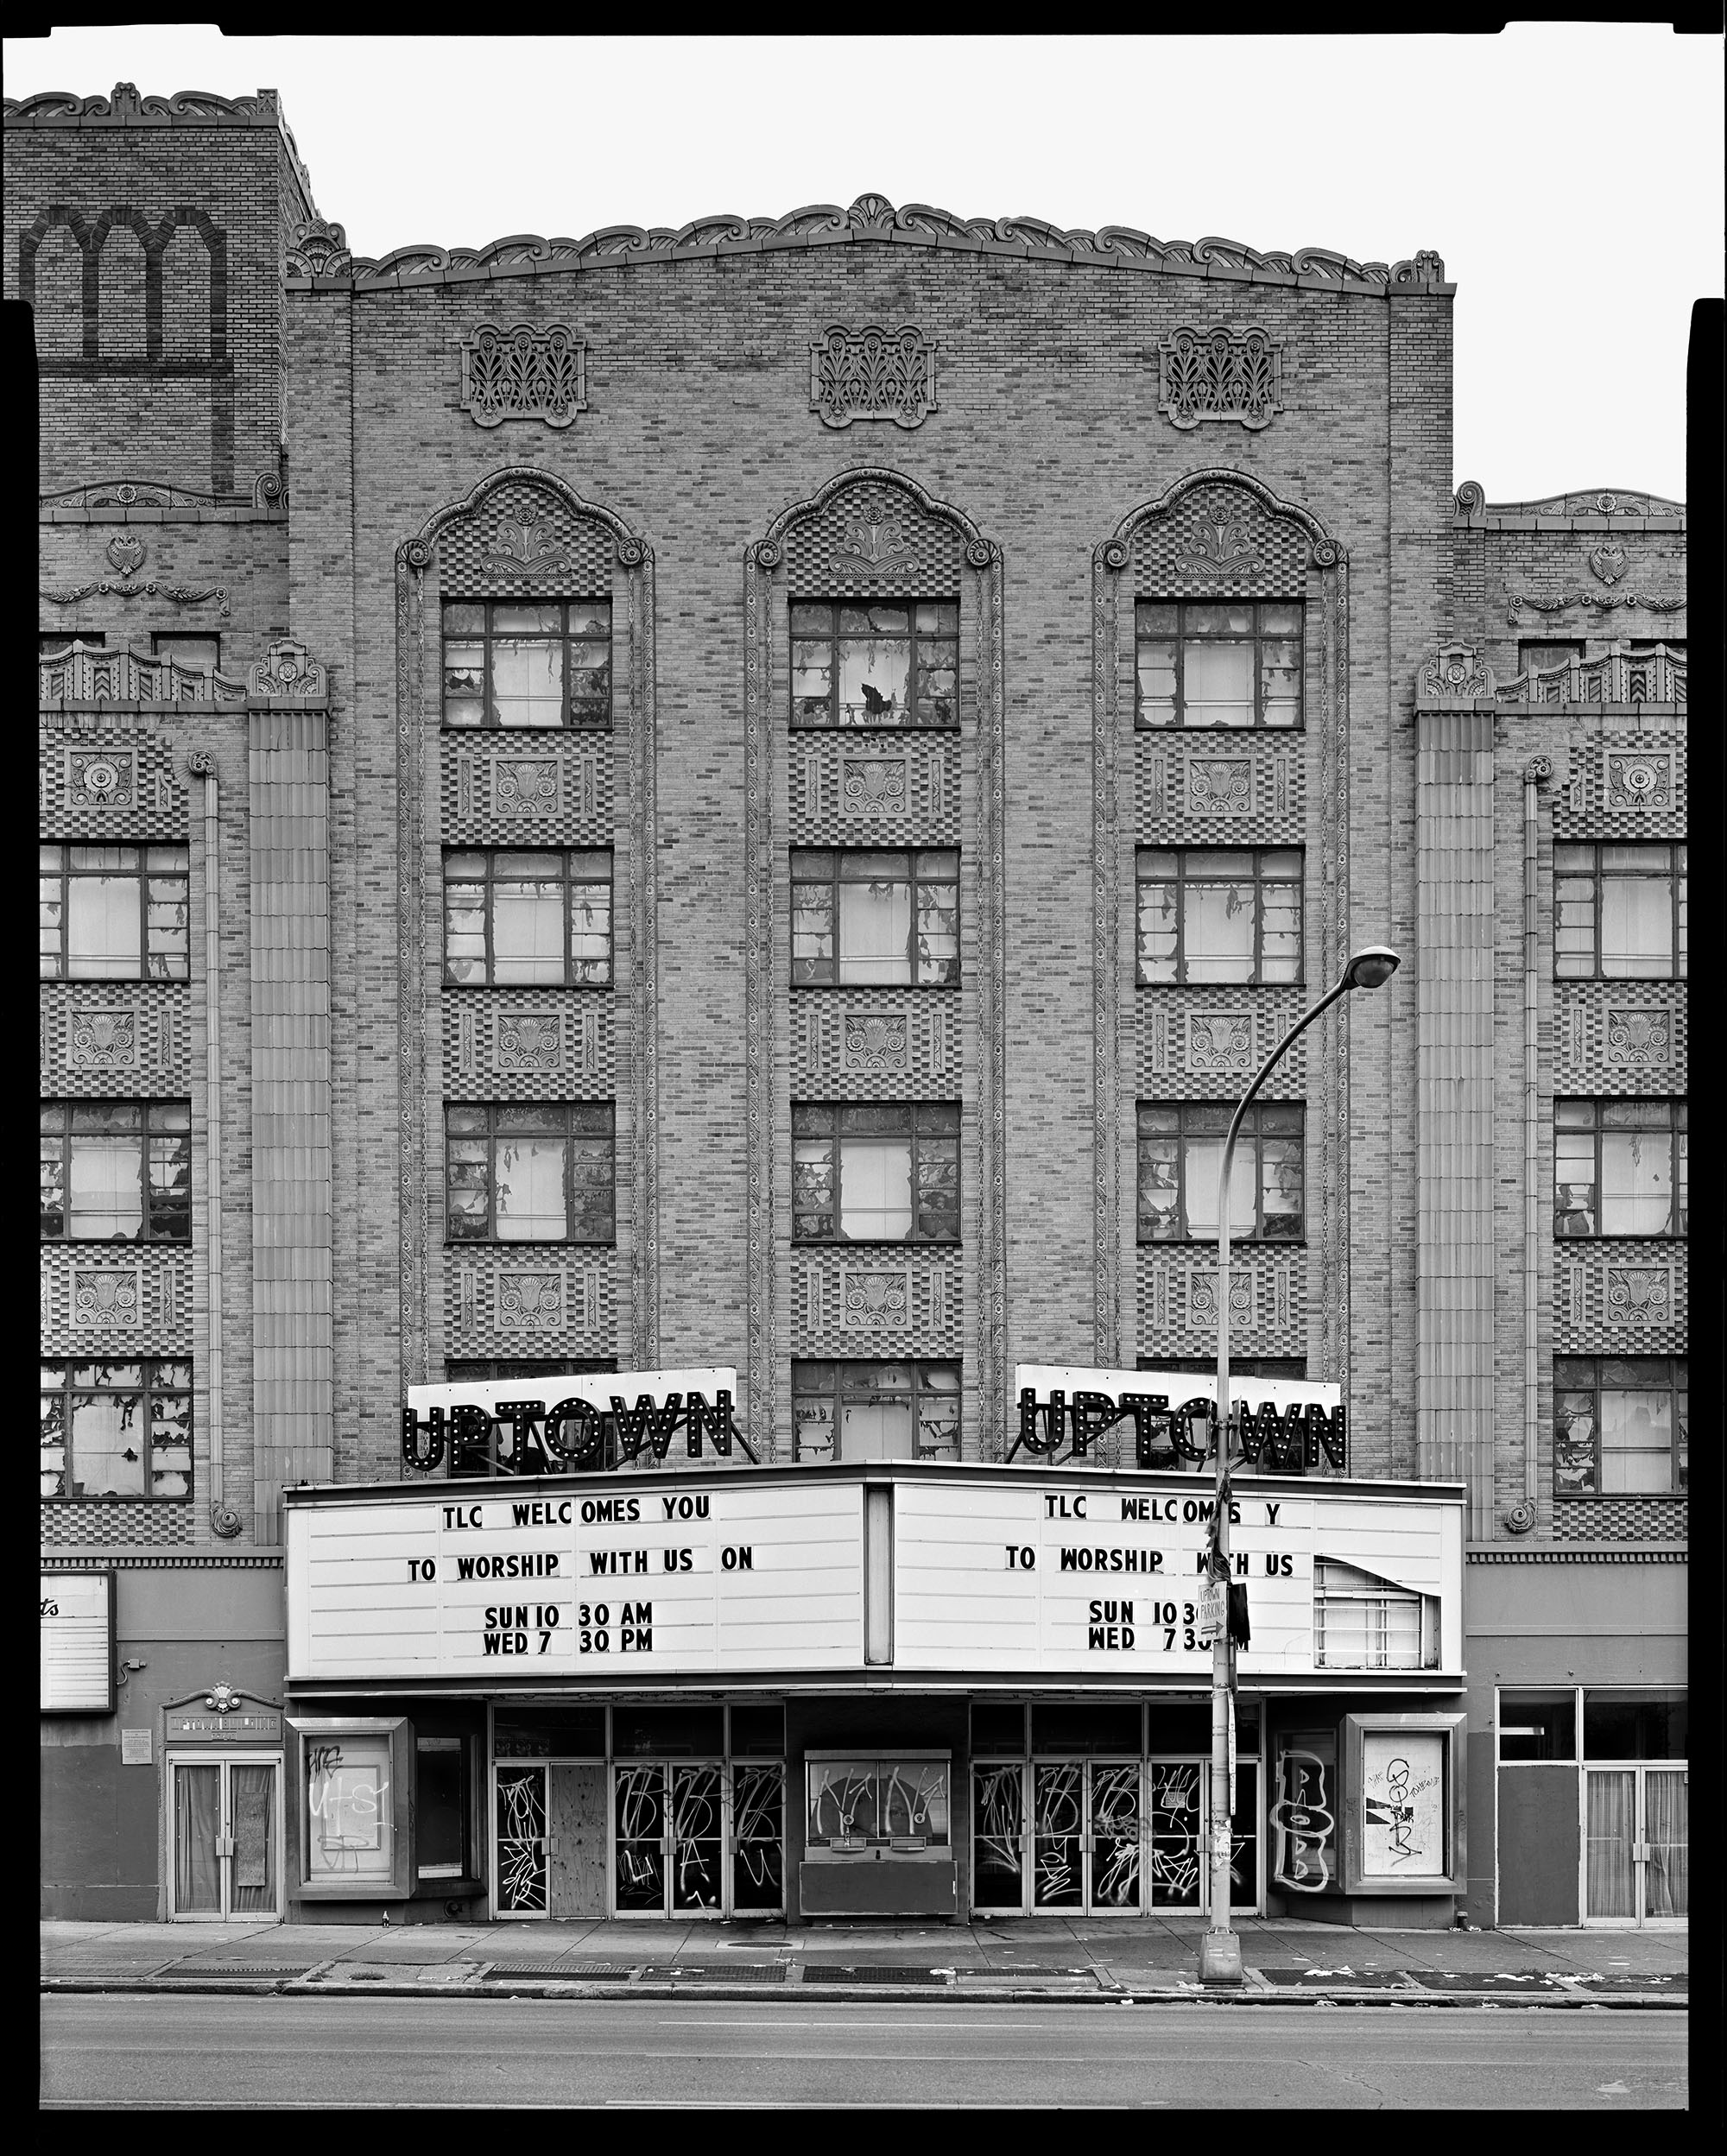 The_Uptown_Theater_1995.jpg